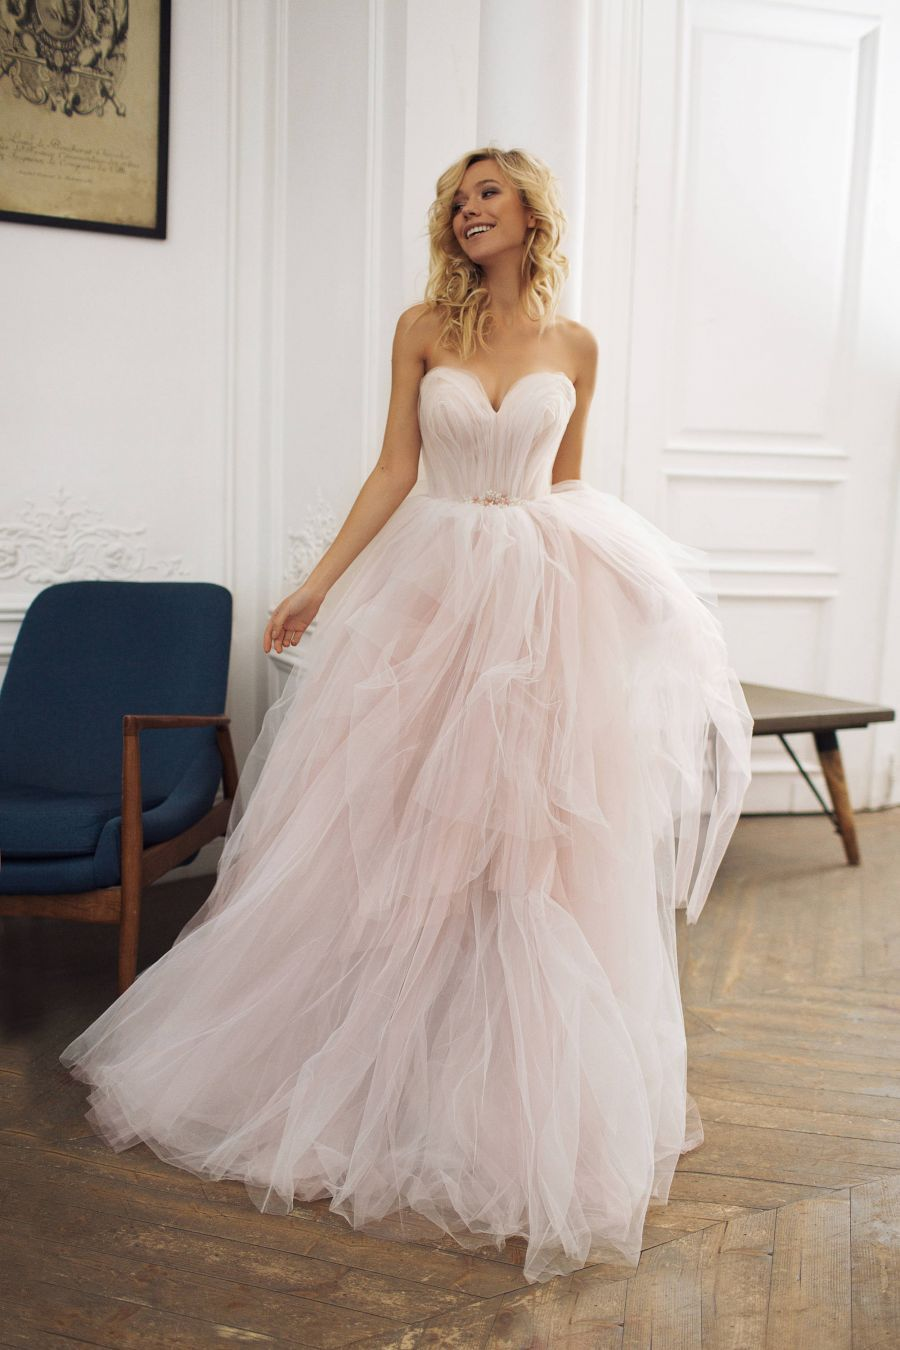 Wedding decorations tulle and lights october 2018 Nude Light Pink and Ivory Mixed Tulle Romantic Strapless Sweetheart